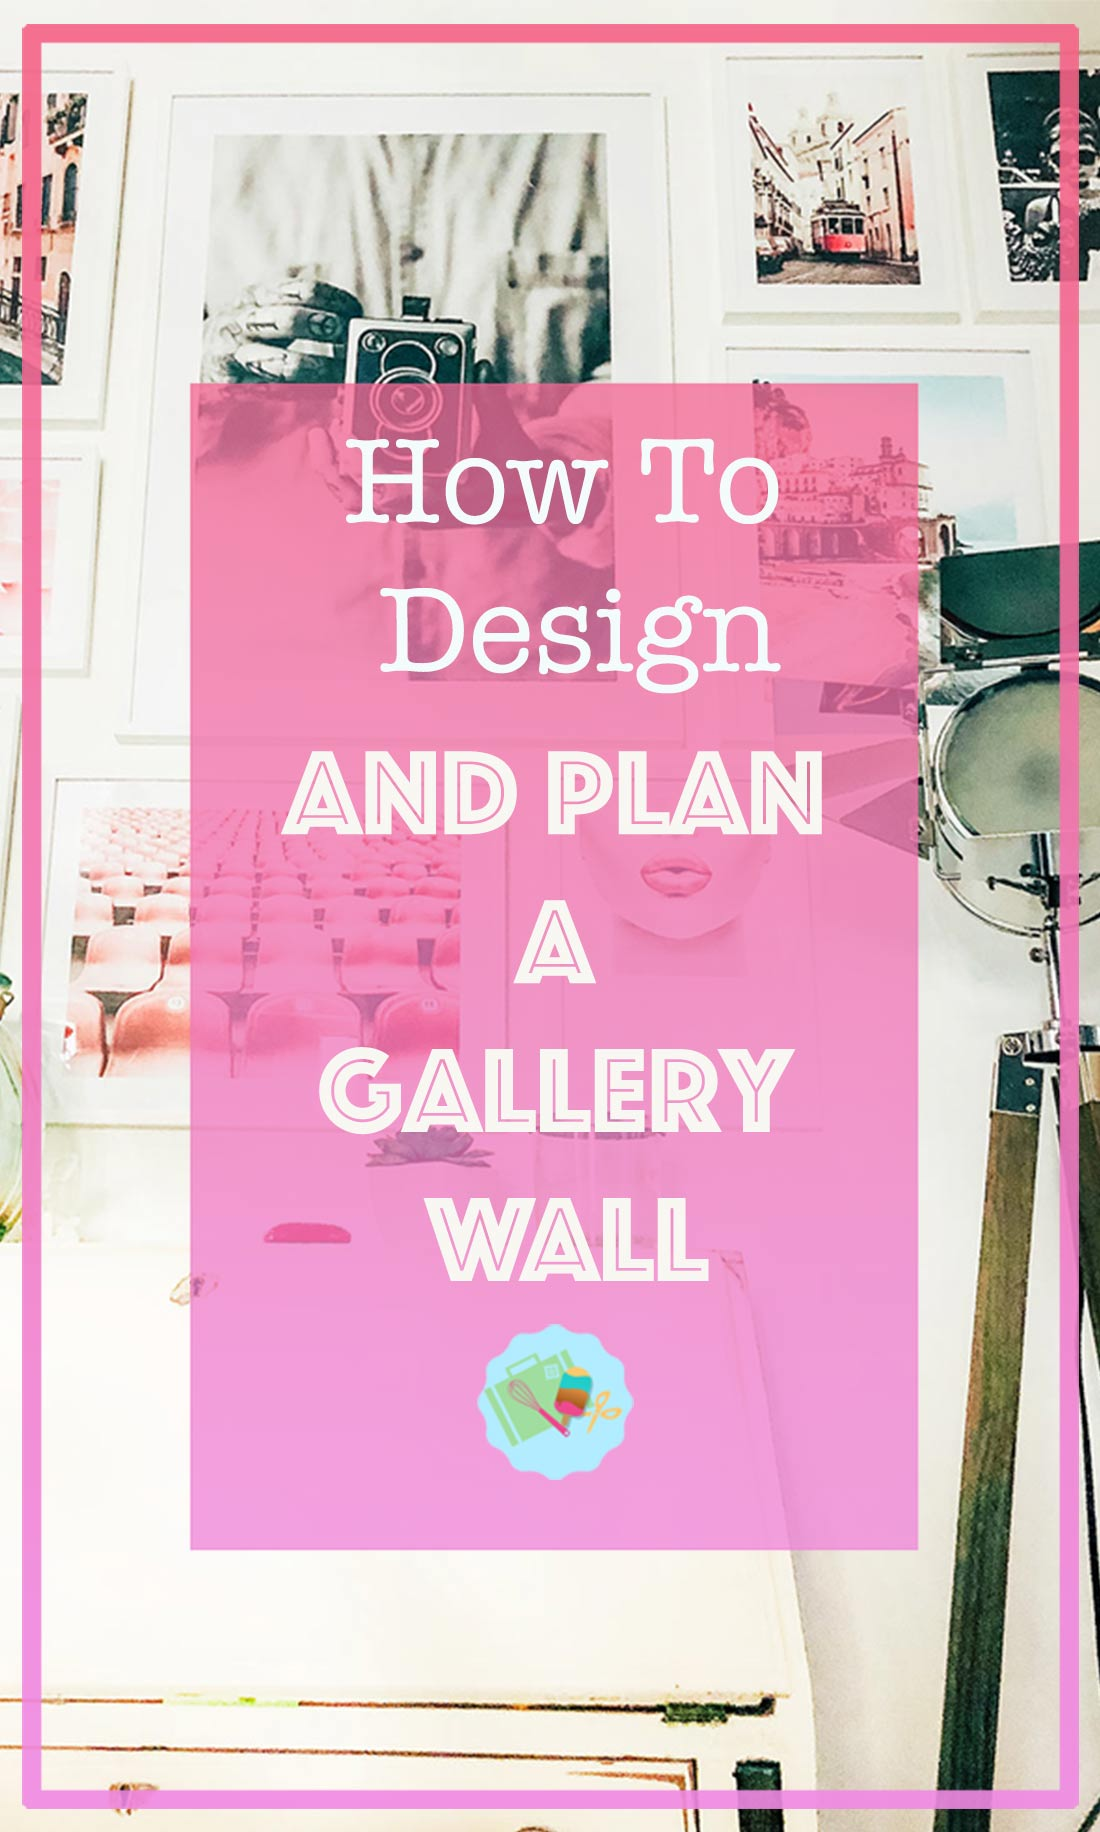 How to paln and design a Gallery Wall